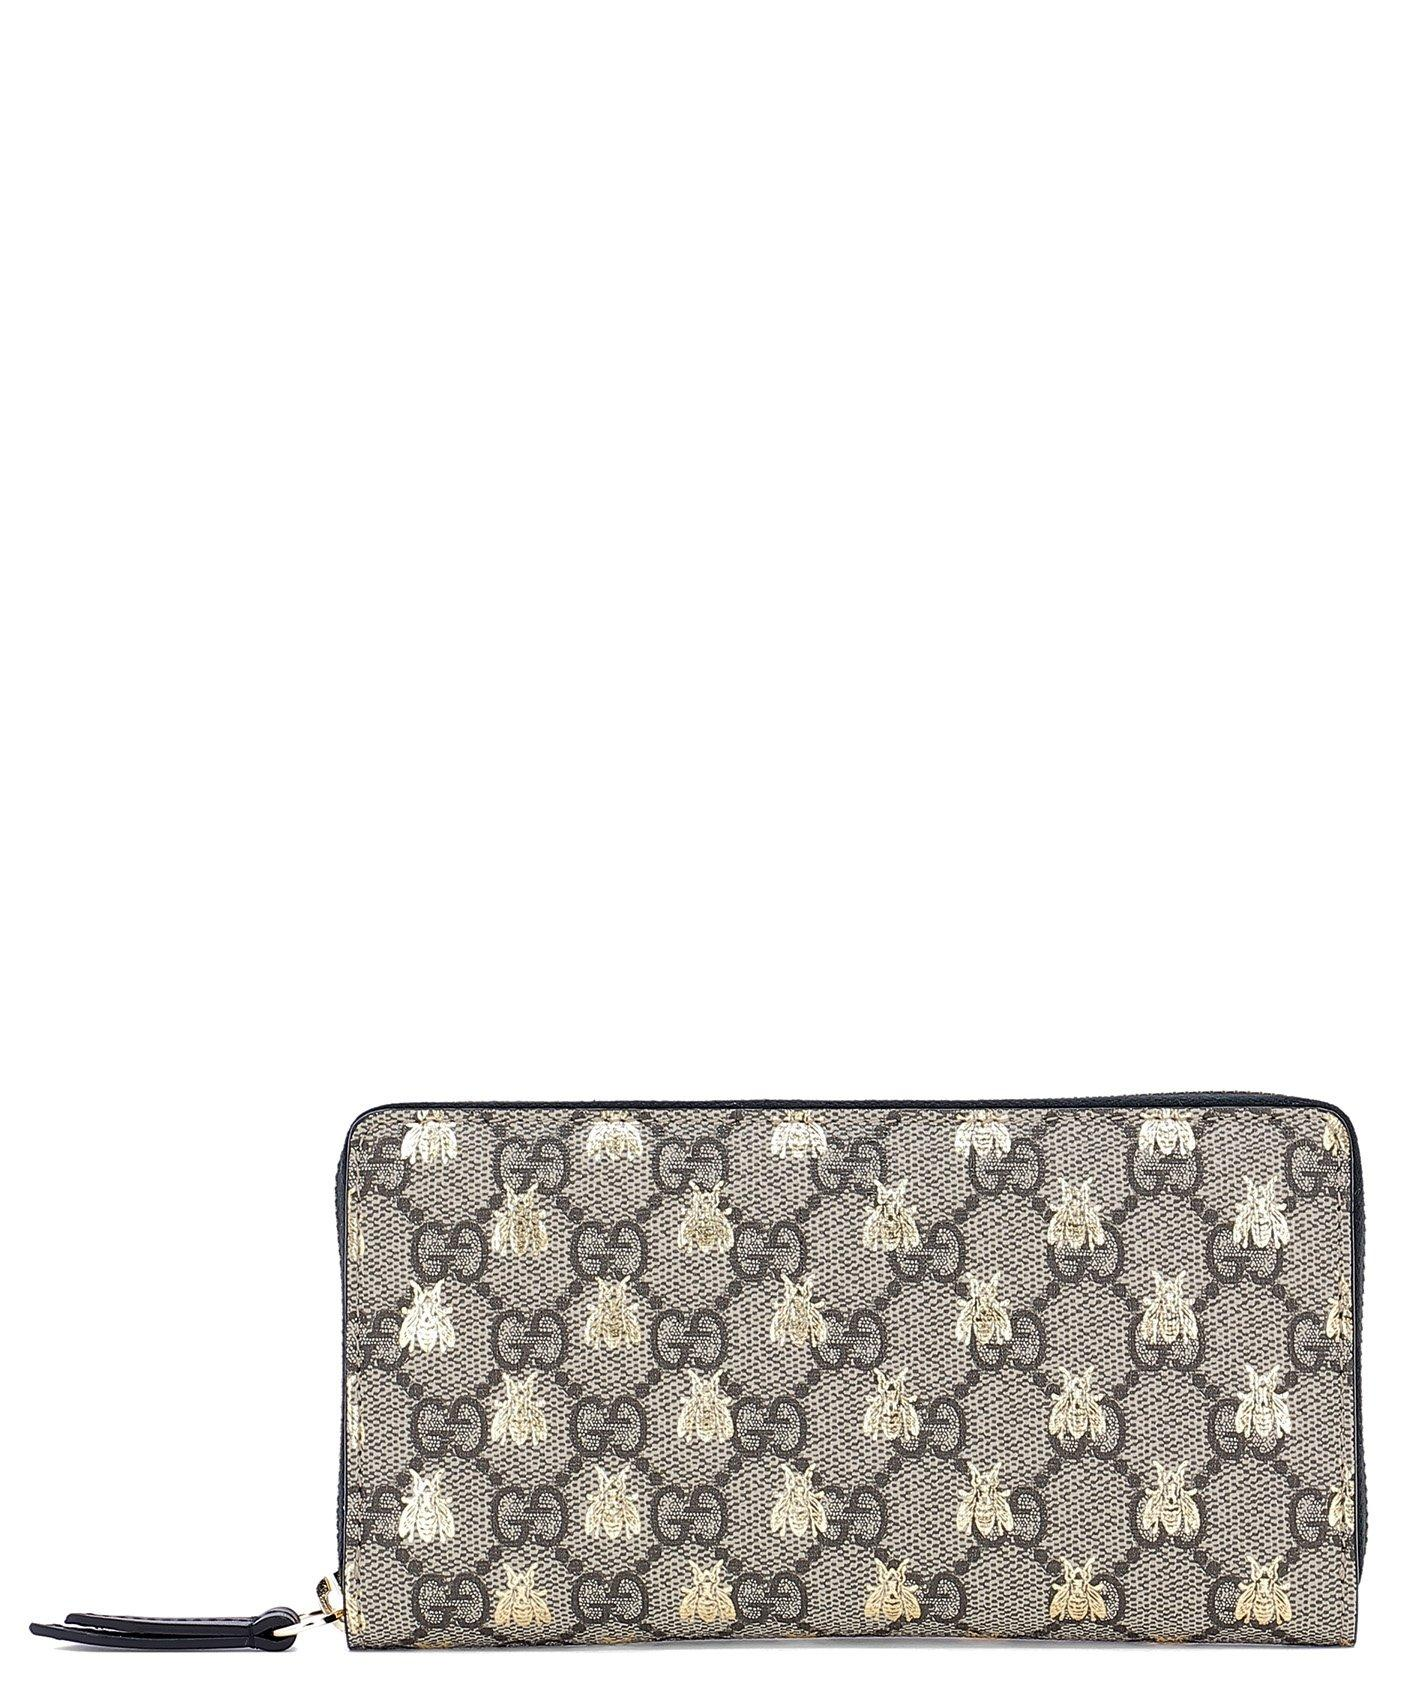 38b17f791be8 Lyst - Gucci GG Supreme Wallet in Metallic